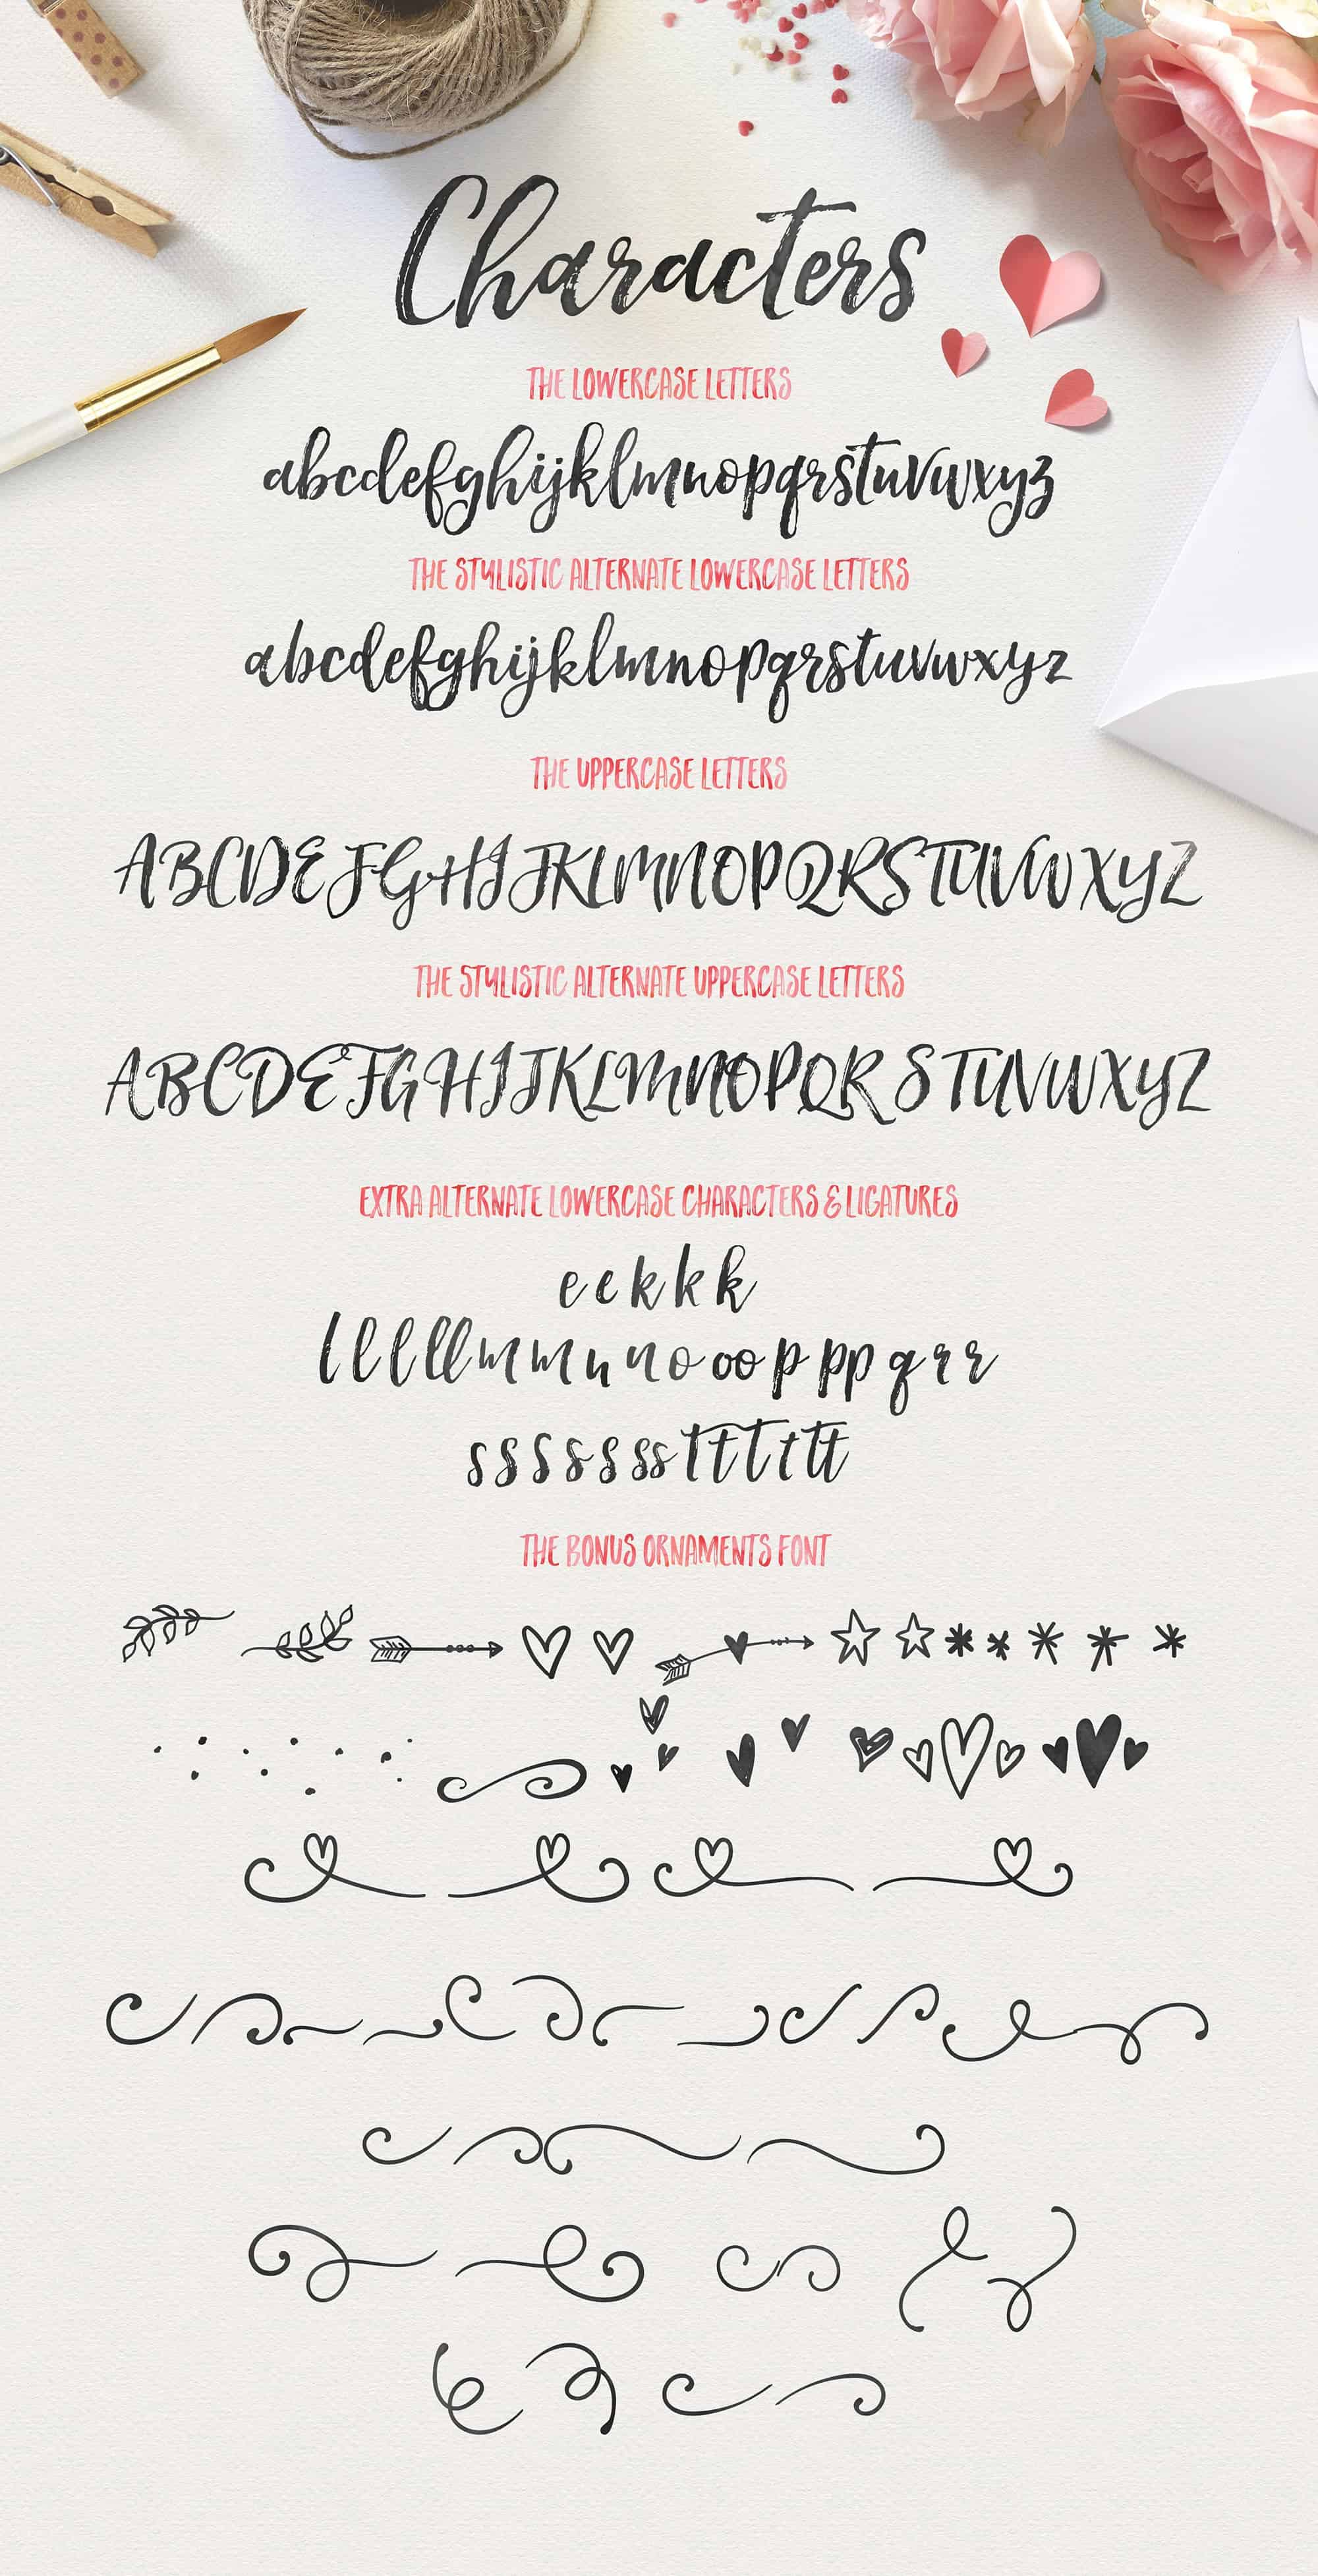 Where to find free and cheap fonts: Fonts with glyphs- Great set of resources!